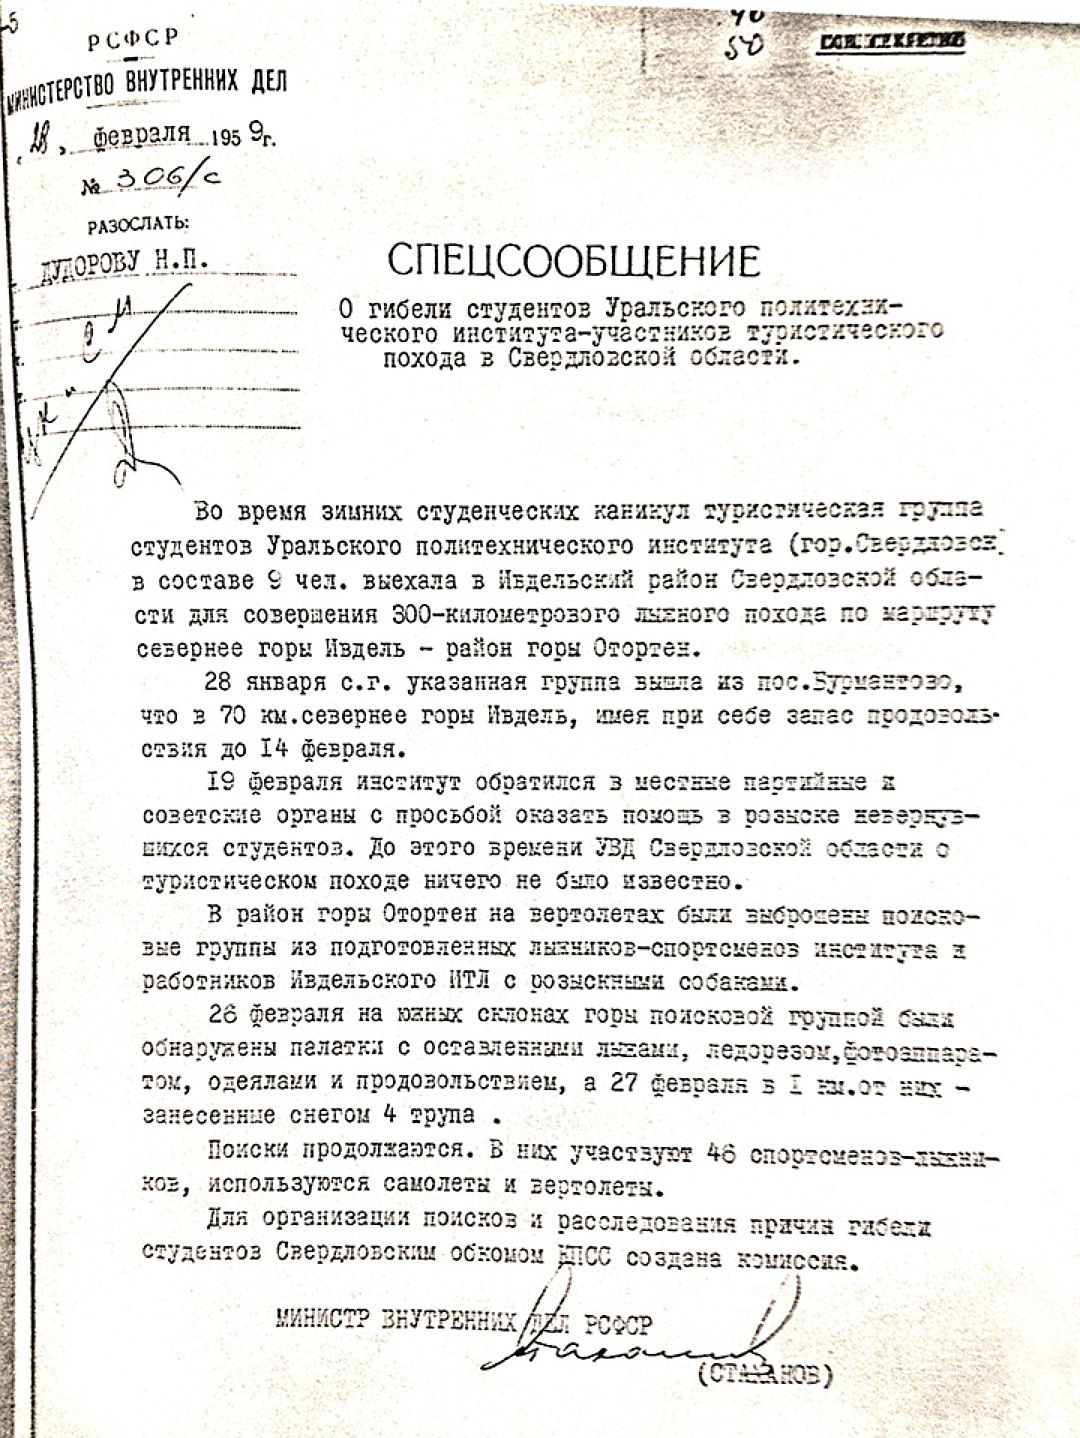 Dyatlov Pass: special report dated 28 February 28 addressed to the Minister of Internal Affairs of the USSR signed by the Minister of the Interior of the RSFSR